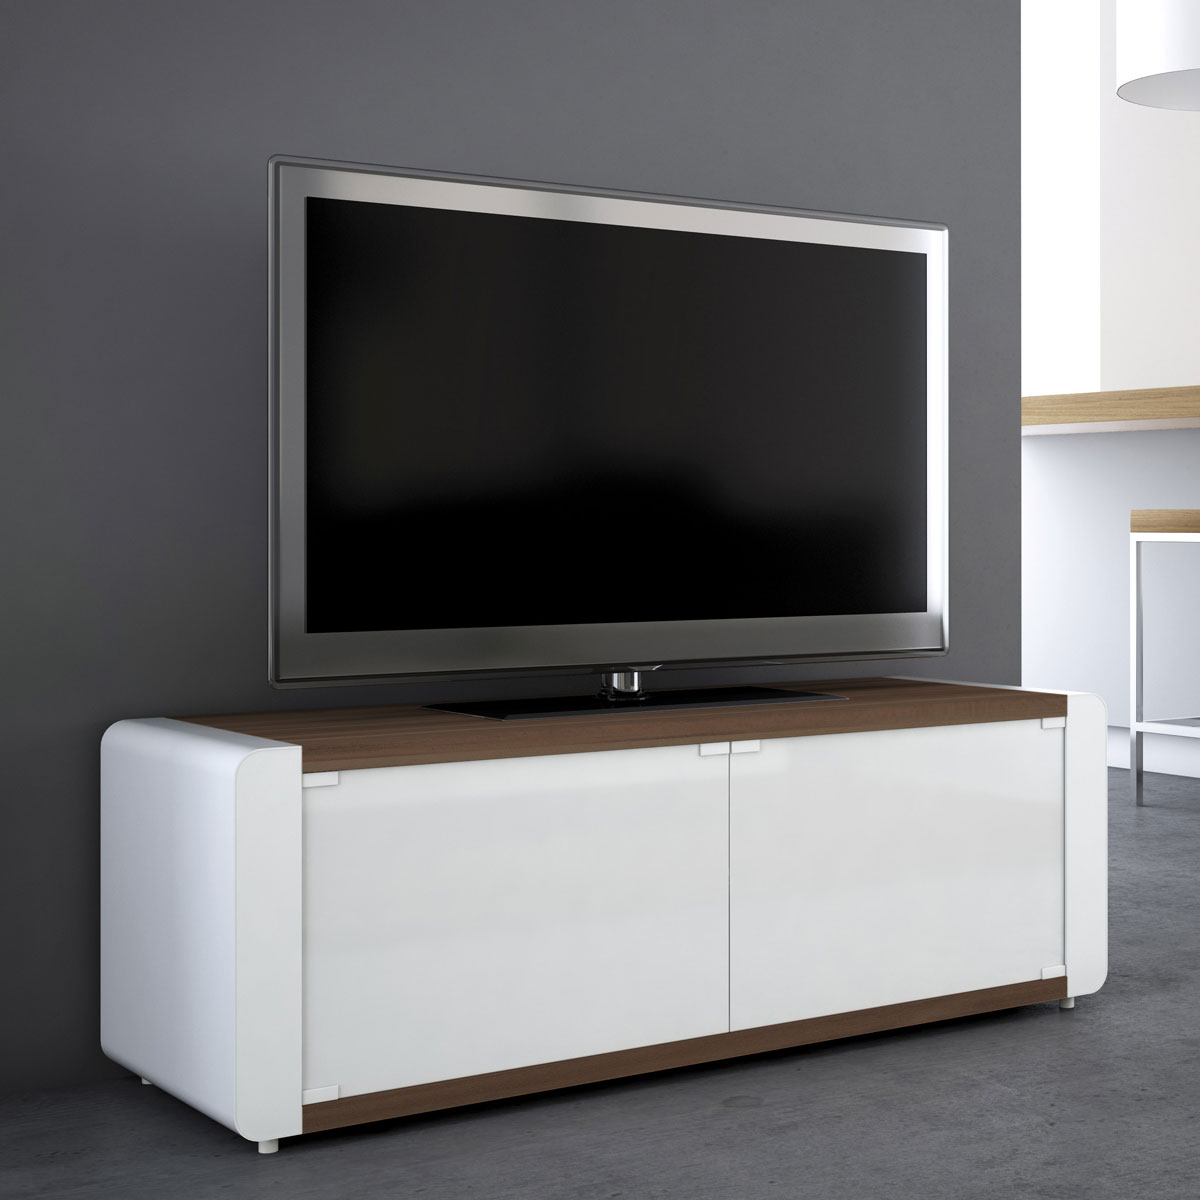 schnepel bei hifi tv seite 1. Black Bedroom Furniture Sets. Home Design Ideas